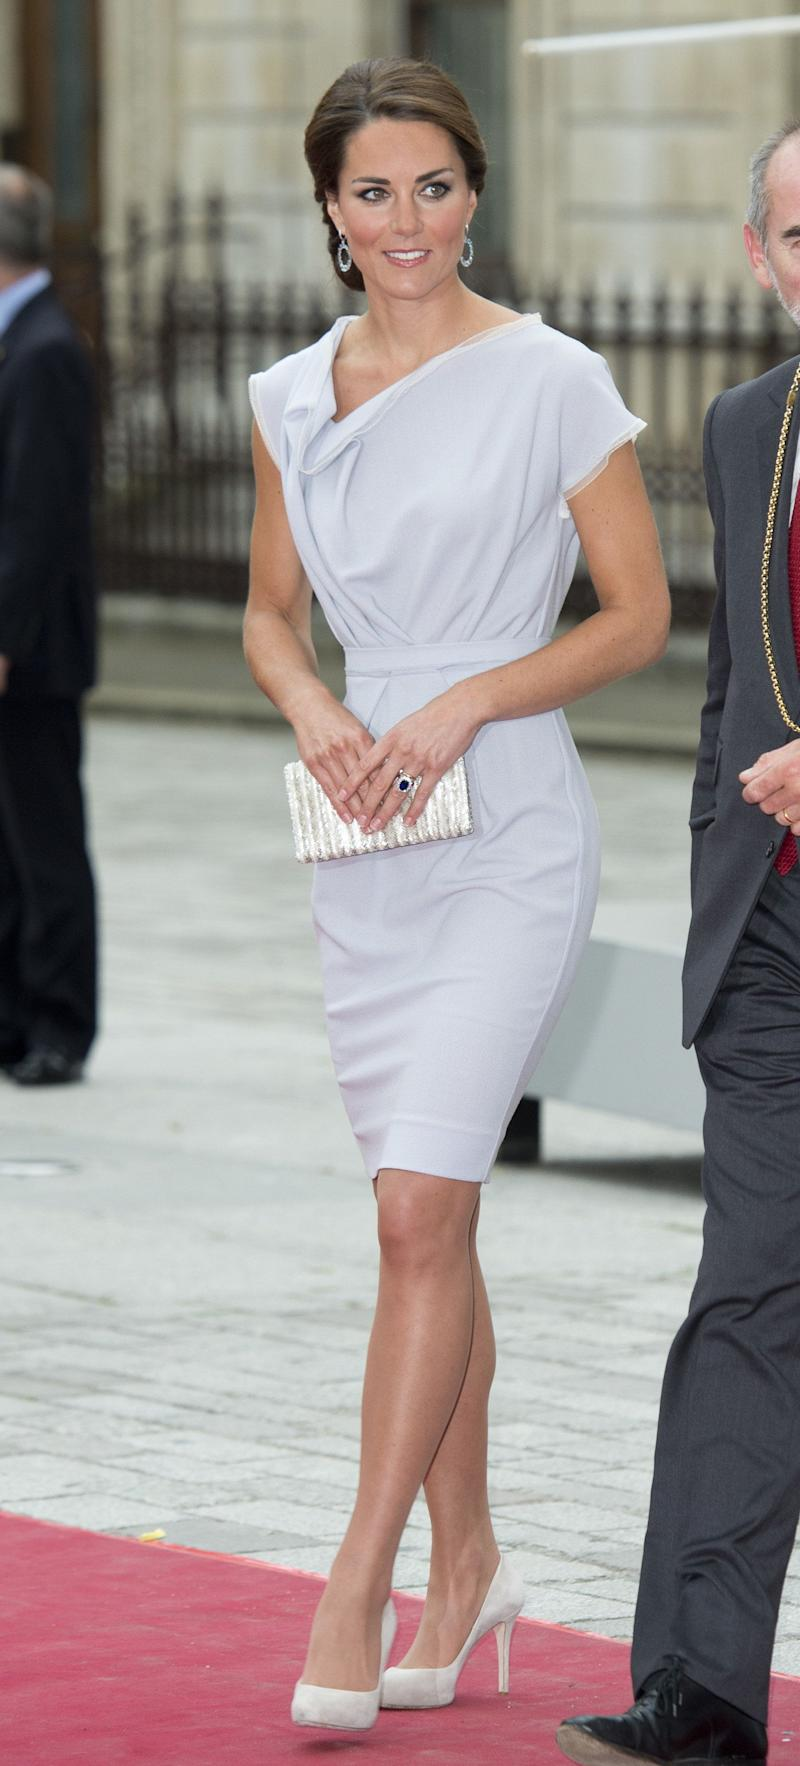 The Duchess arrived at UK's Creative Industries reception in July 2012 wearing a classy gray Roksanda Ilincic dress.